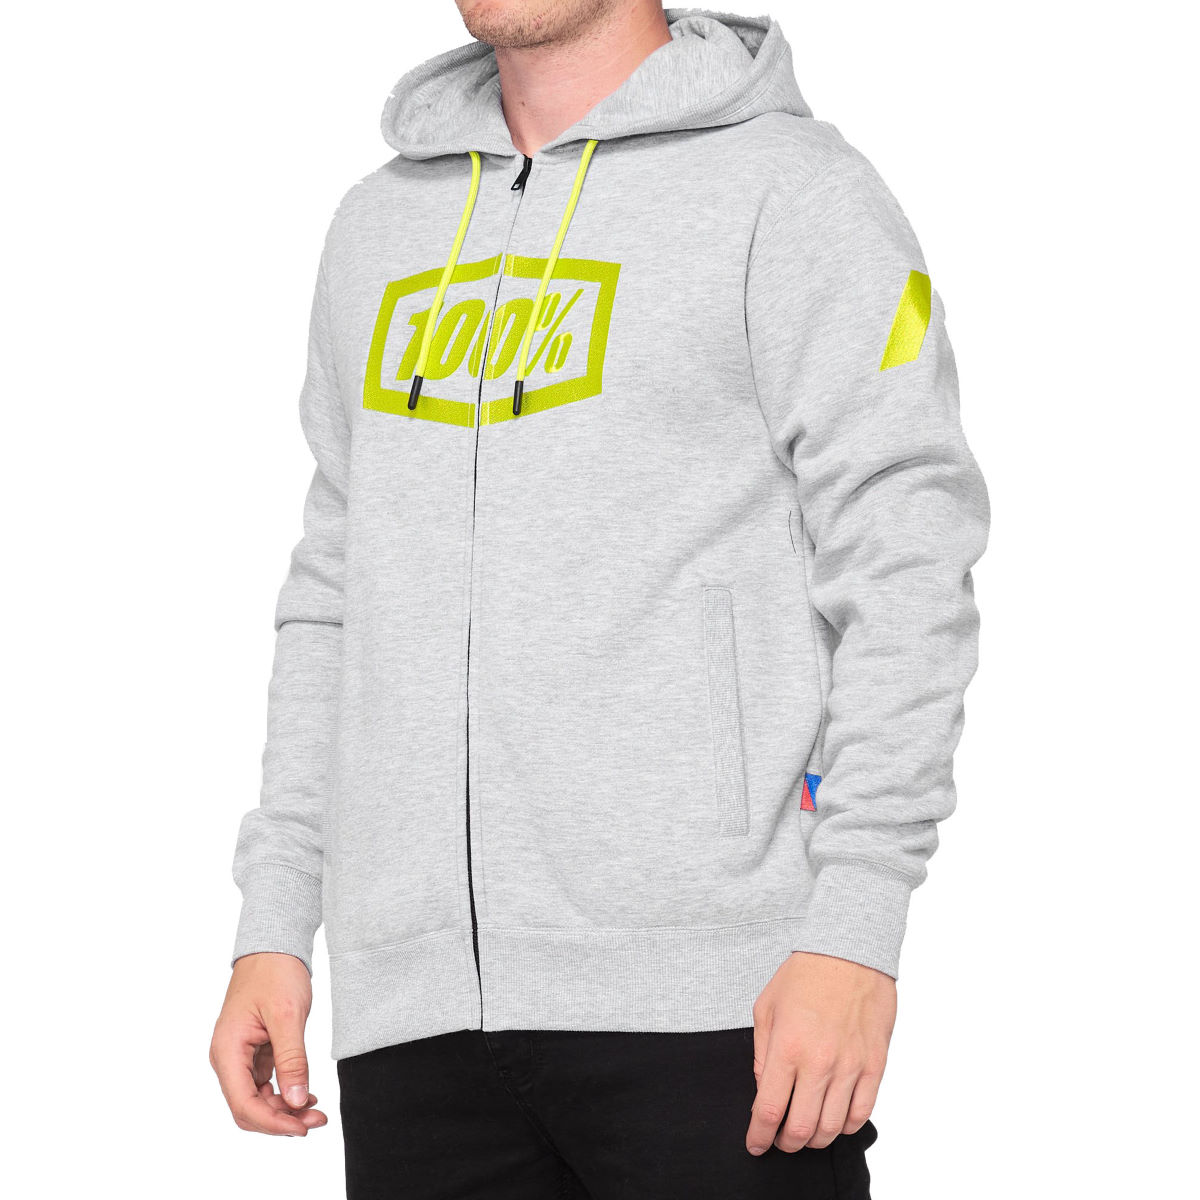 100% Syndicate Zip Hooded Sweatshirt - S Grey/yellow  Sweatshirts